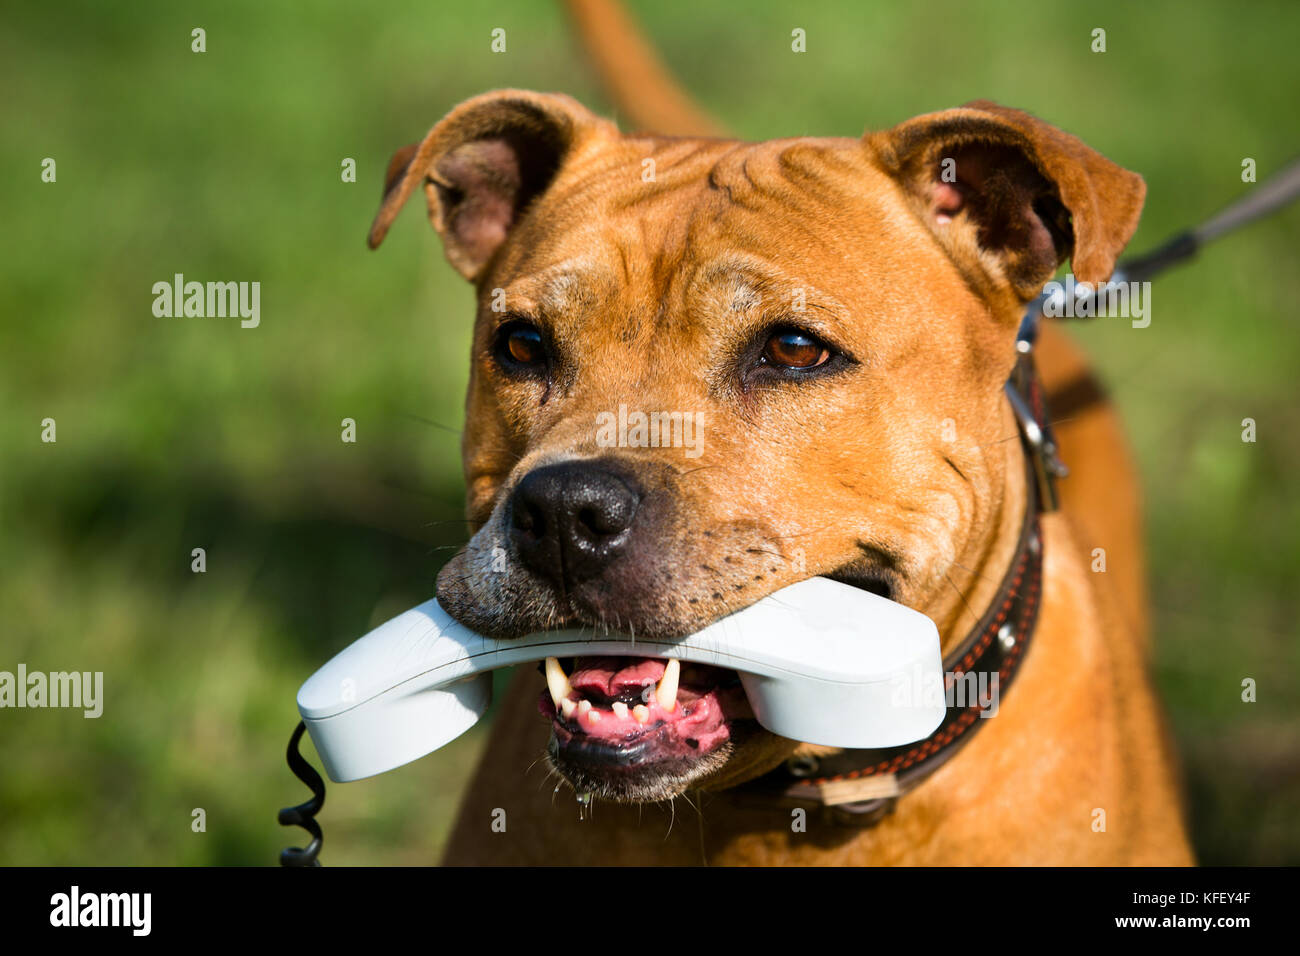 American Staffordshire terrier holding a phone in his mouth - concept of communication - Stock Image